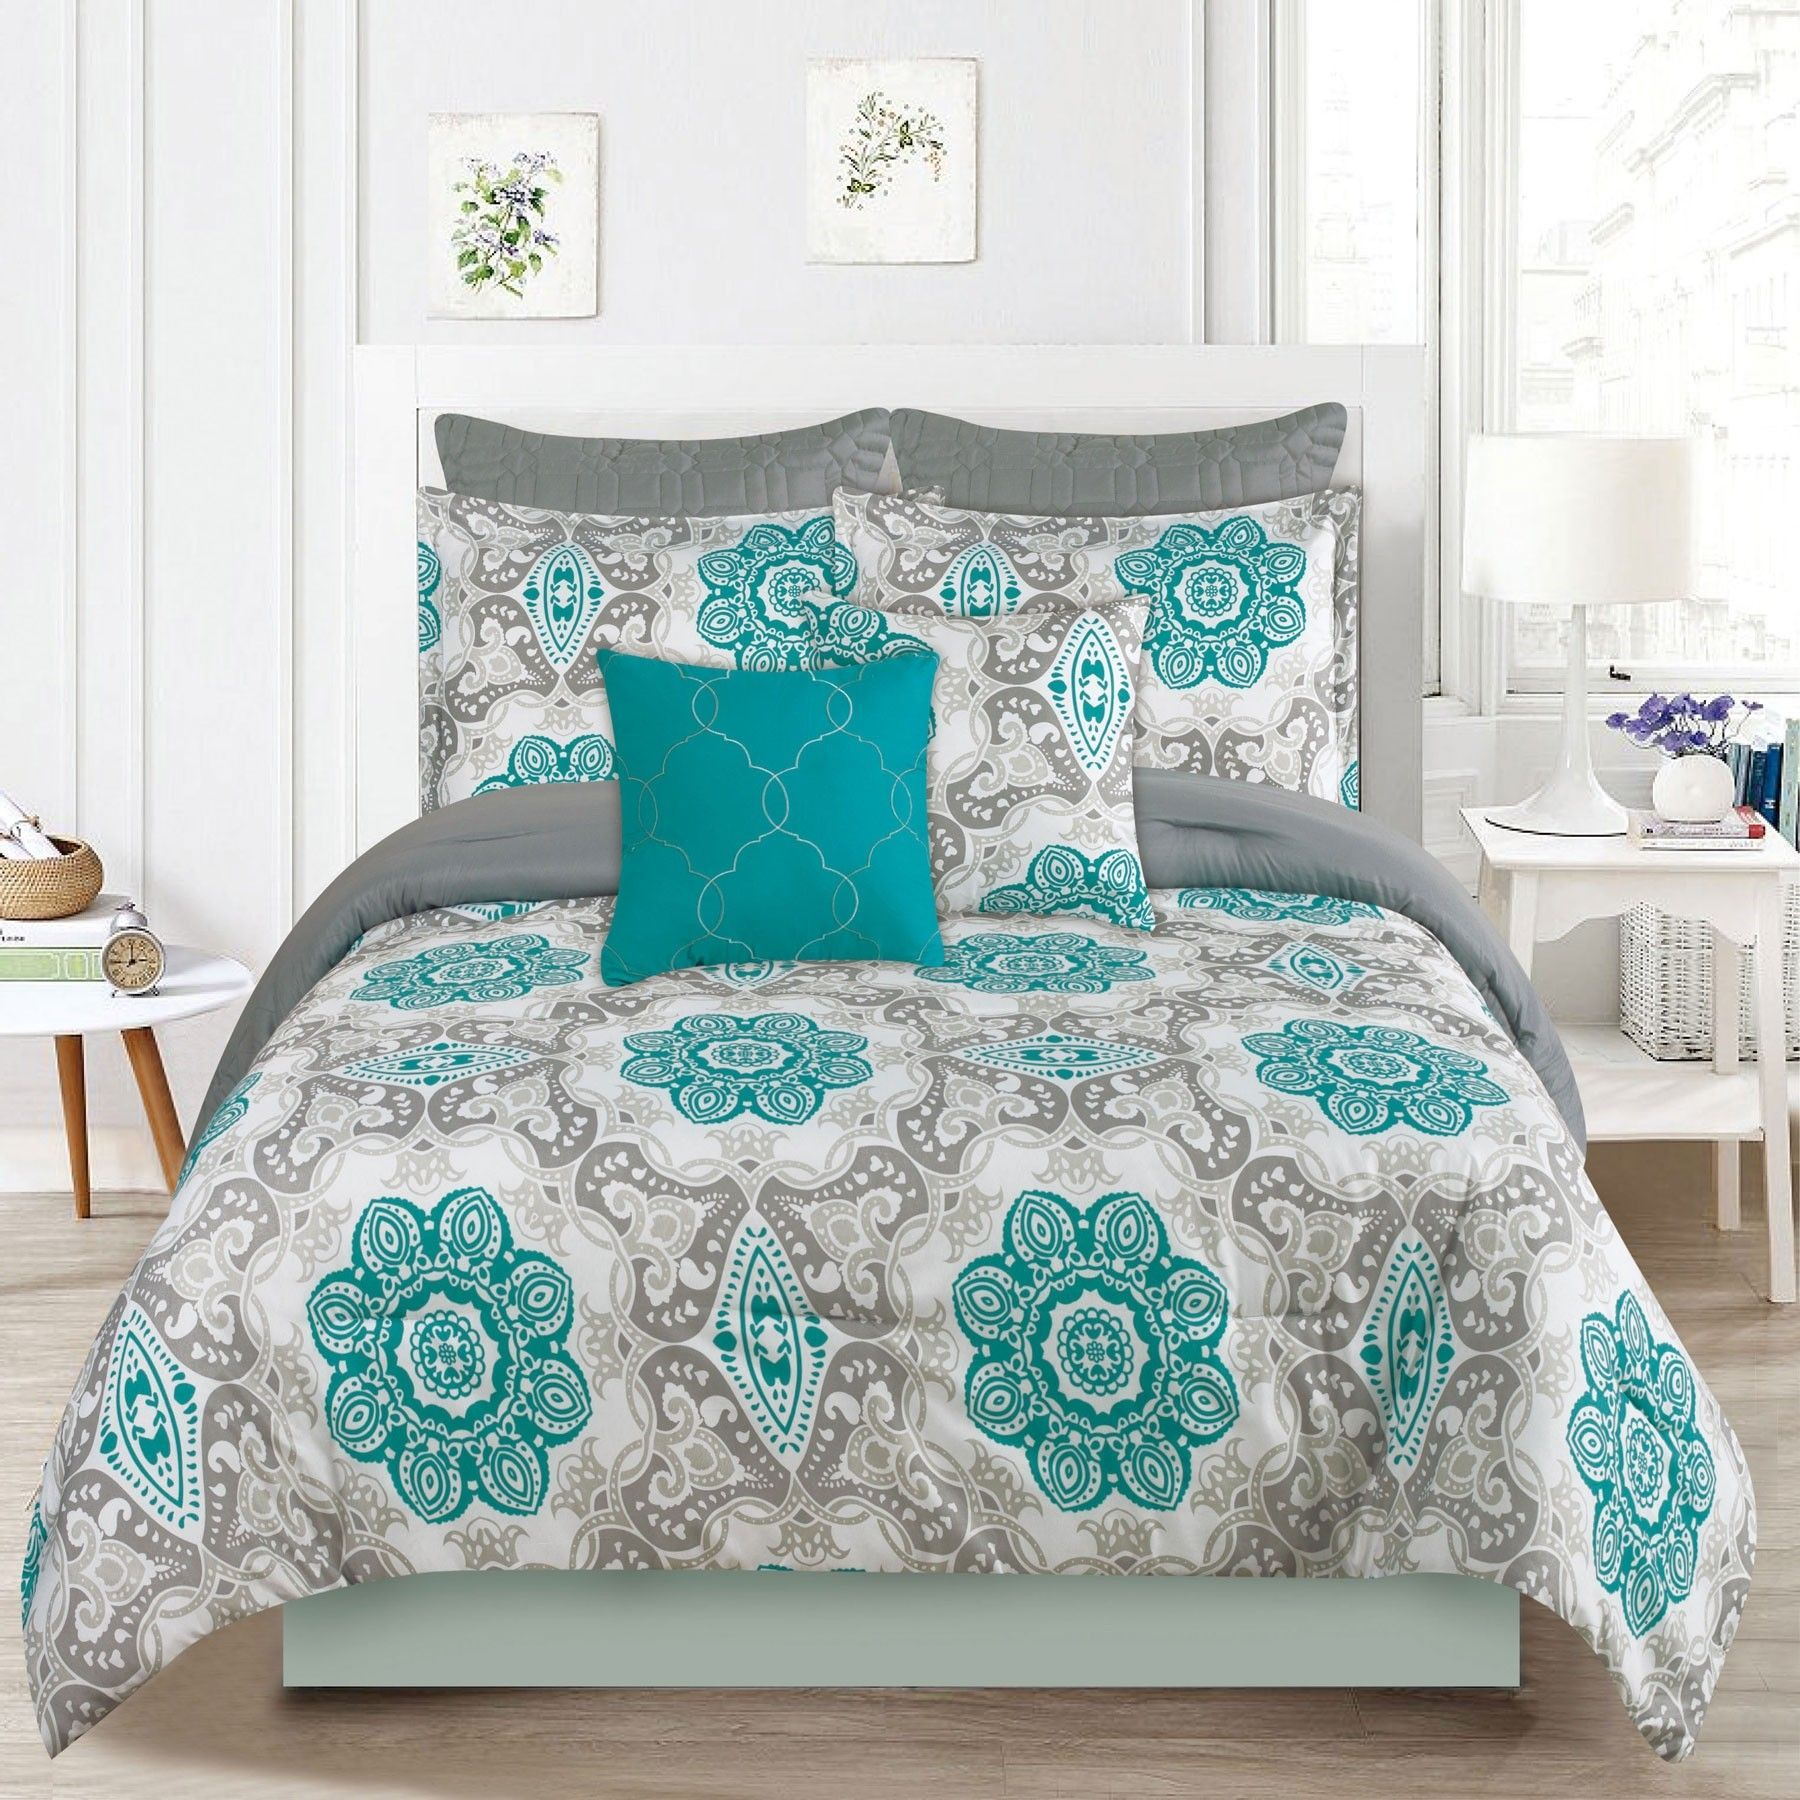 Crest Home Sunrise Queen Size Bedding Comforter 7 Piece Bed Set Teal Blue And Gray Medallion King Size Bedding Comforters Bed Linen Sets Bedding Sets